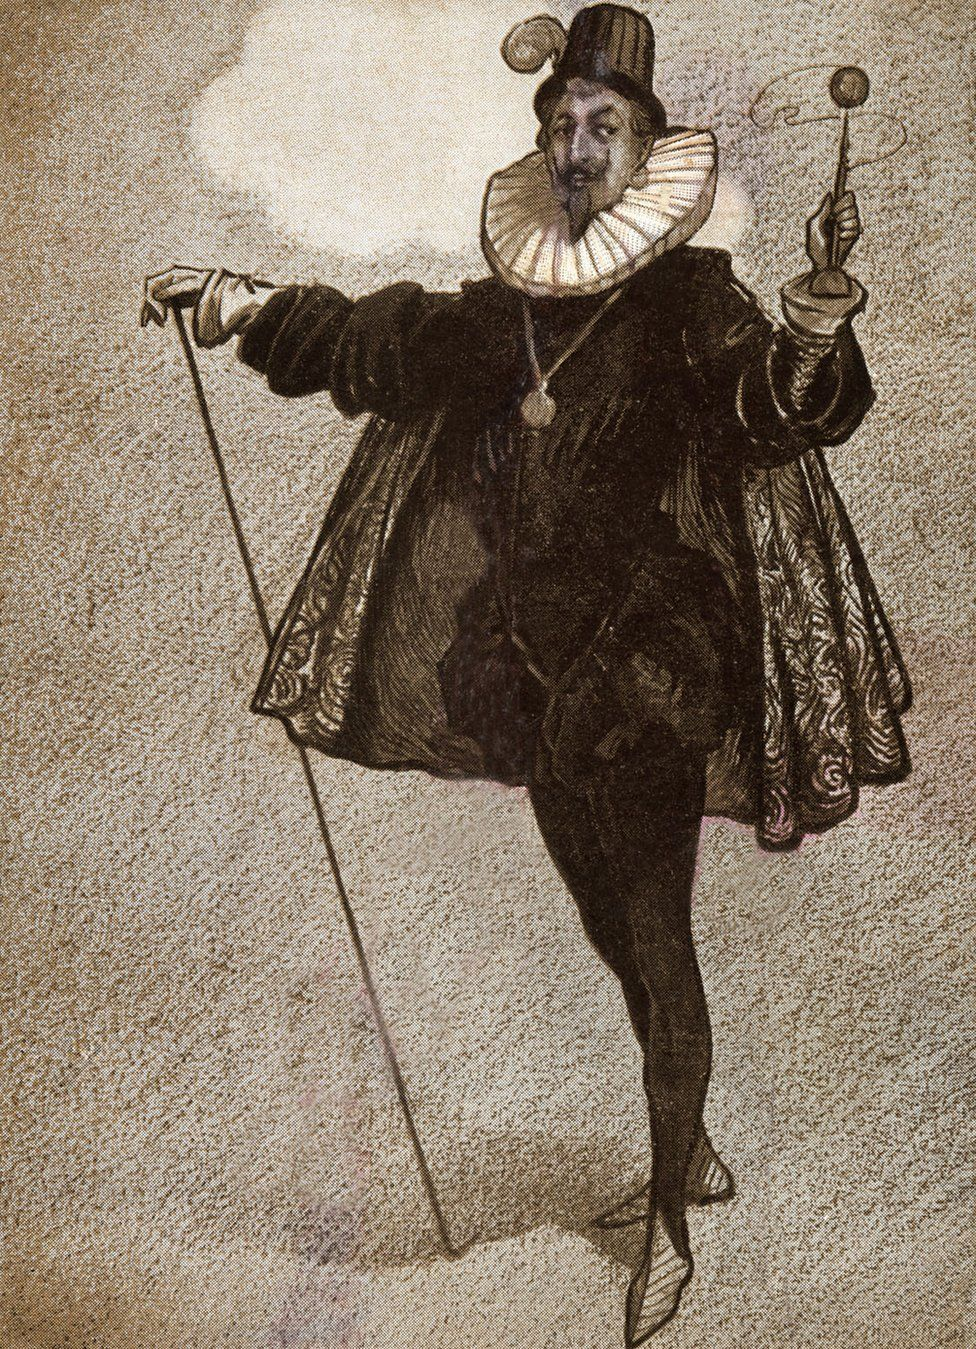 The Bard satirized the Pilgrim Fathers through the self-important character of Malvolio in Twelfth Night